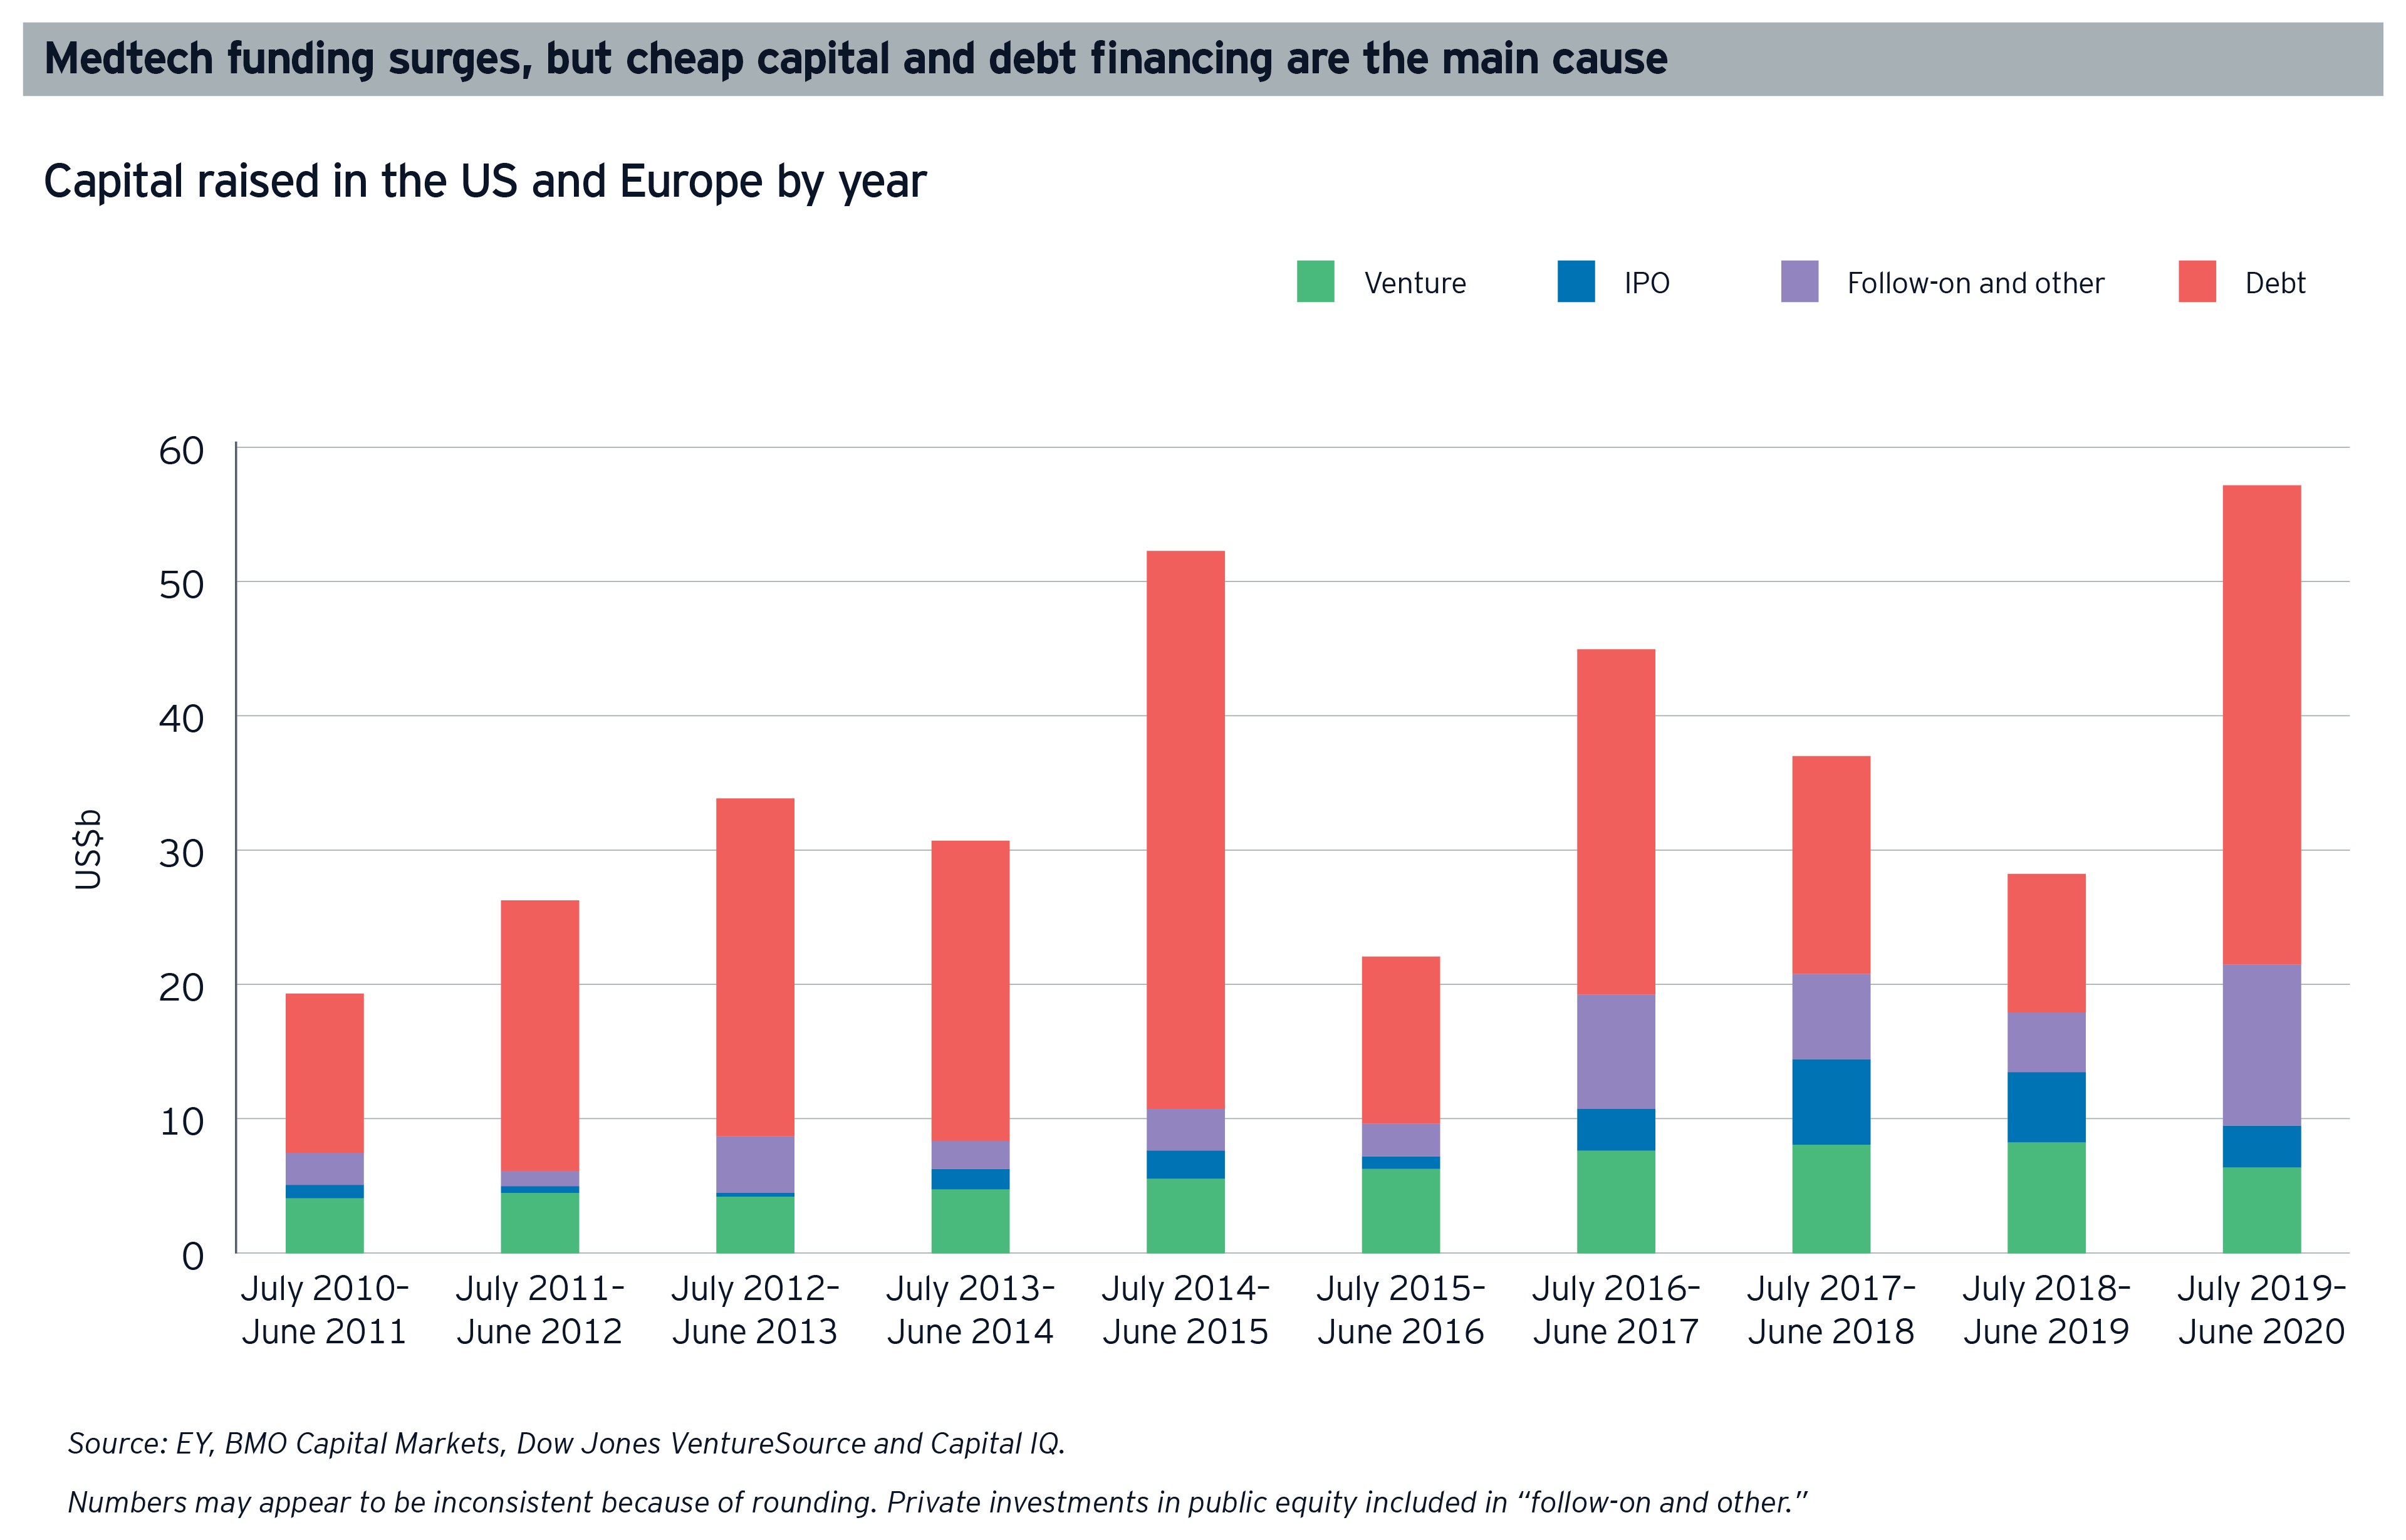 Medtech funding surges, but cheap capital and debt financing are the main cause